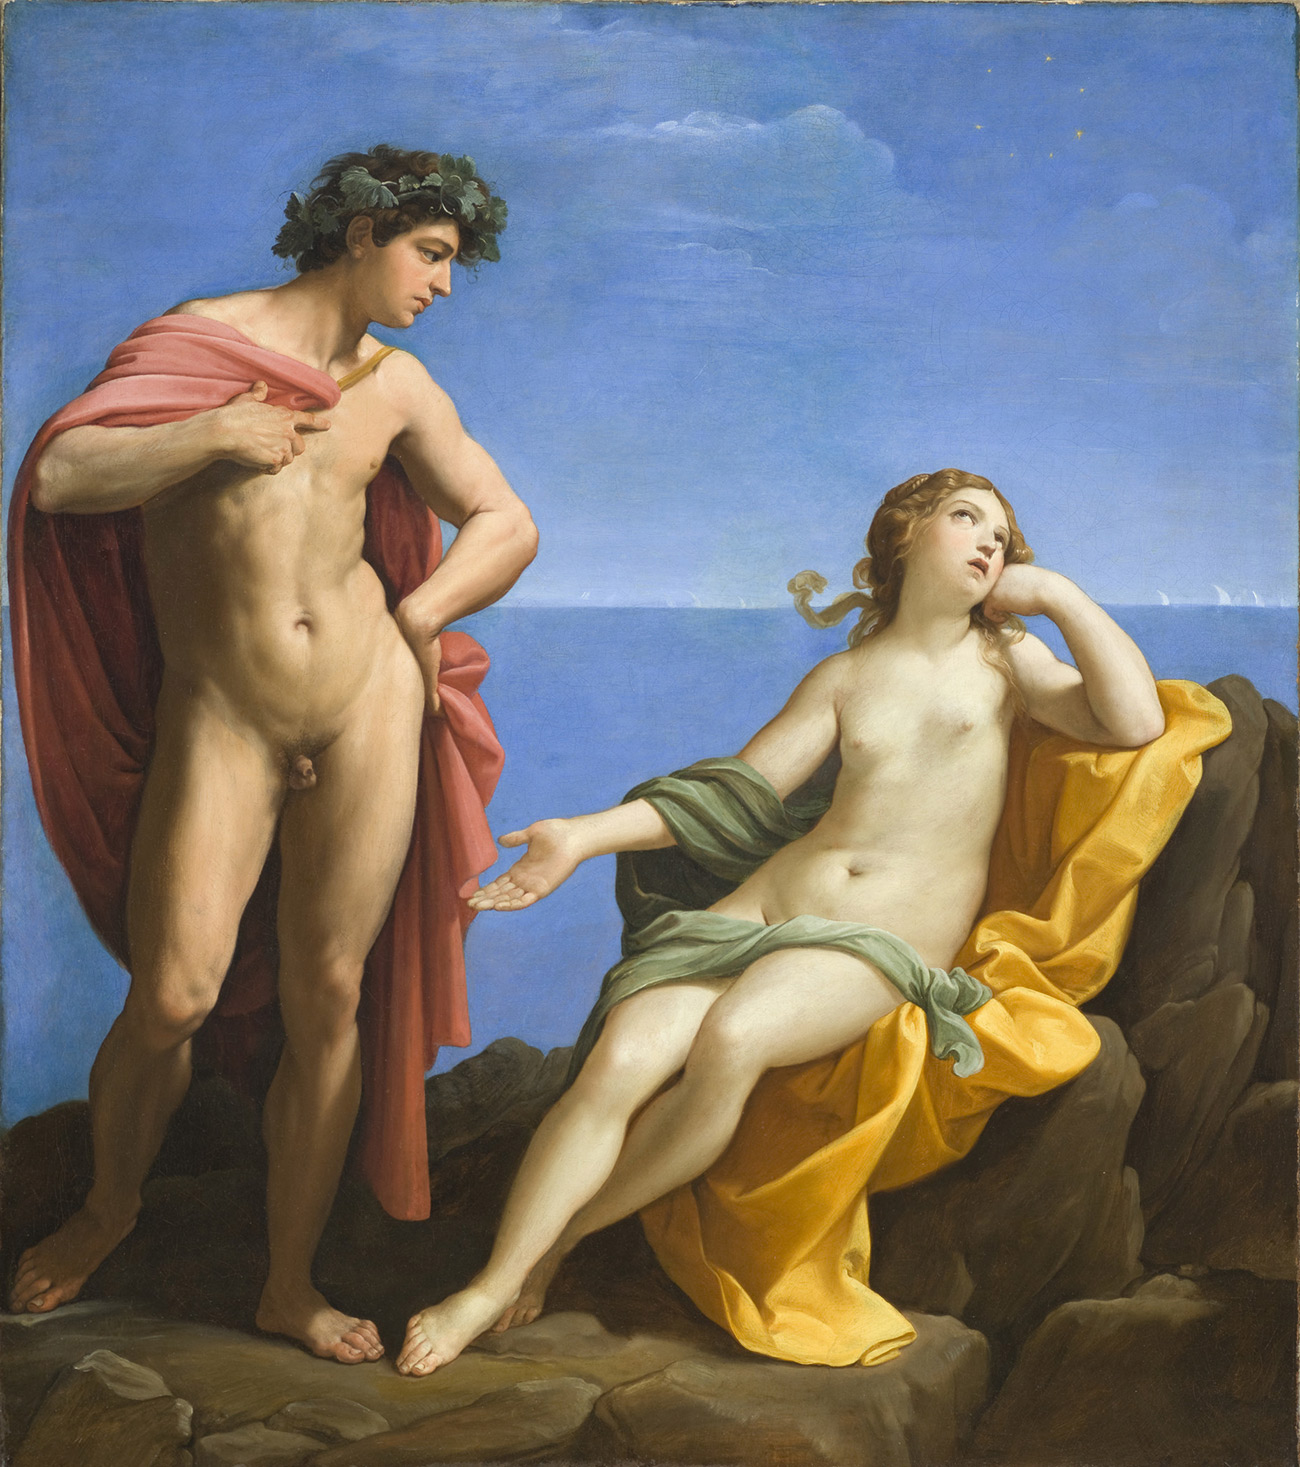 A naked young man stands to the left, holding a red cloak behind him, while a naked young woman reclines on a gold cloak on an outcropping of rocks next to the sea. She looks bored.